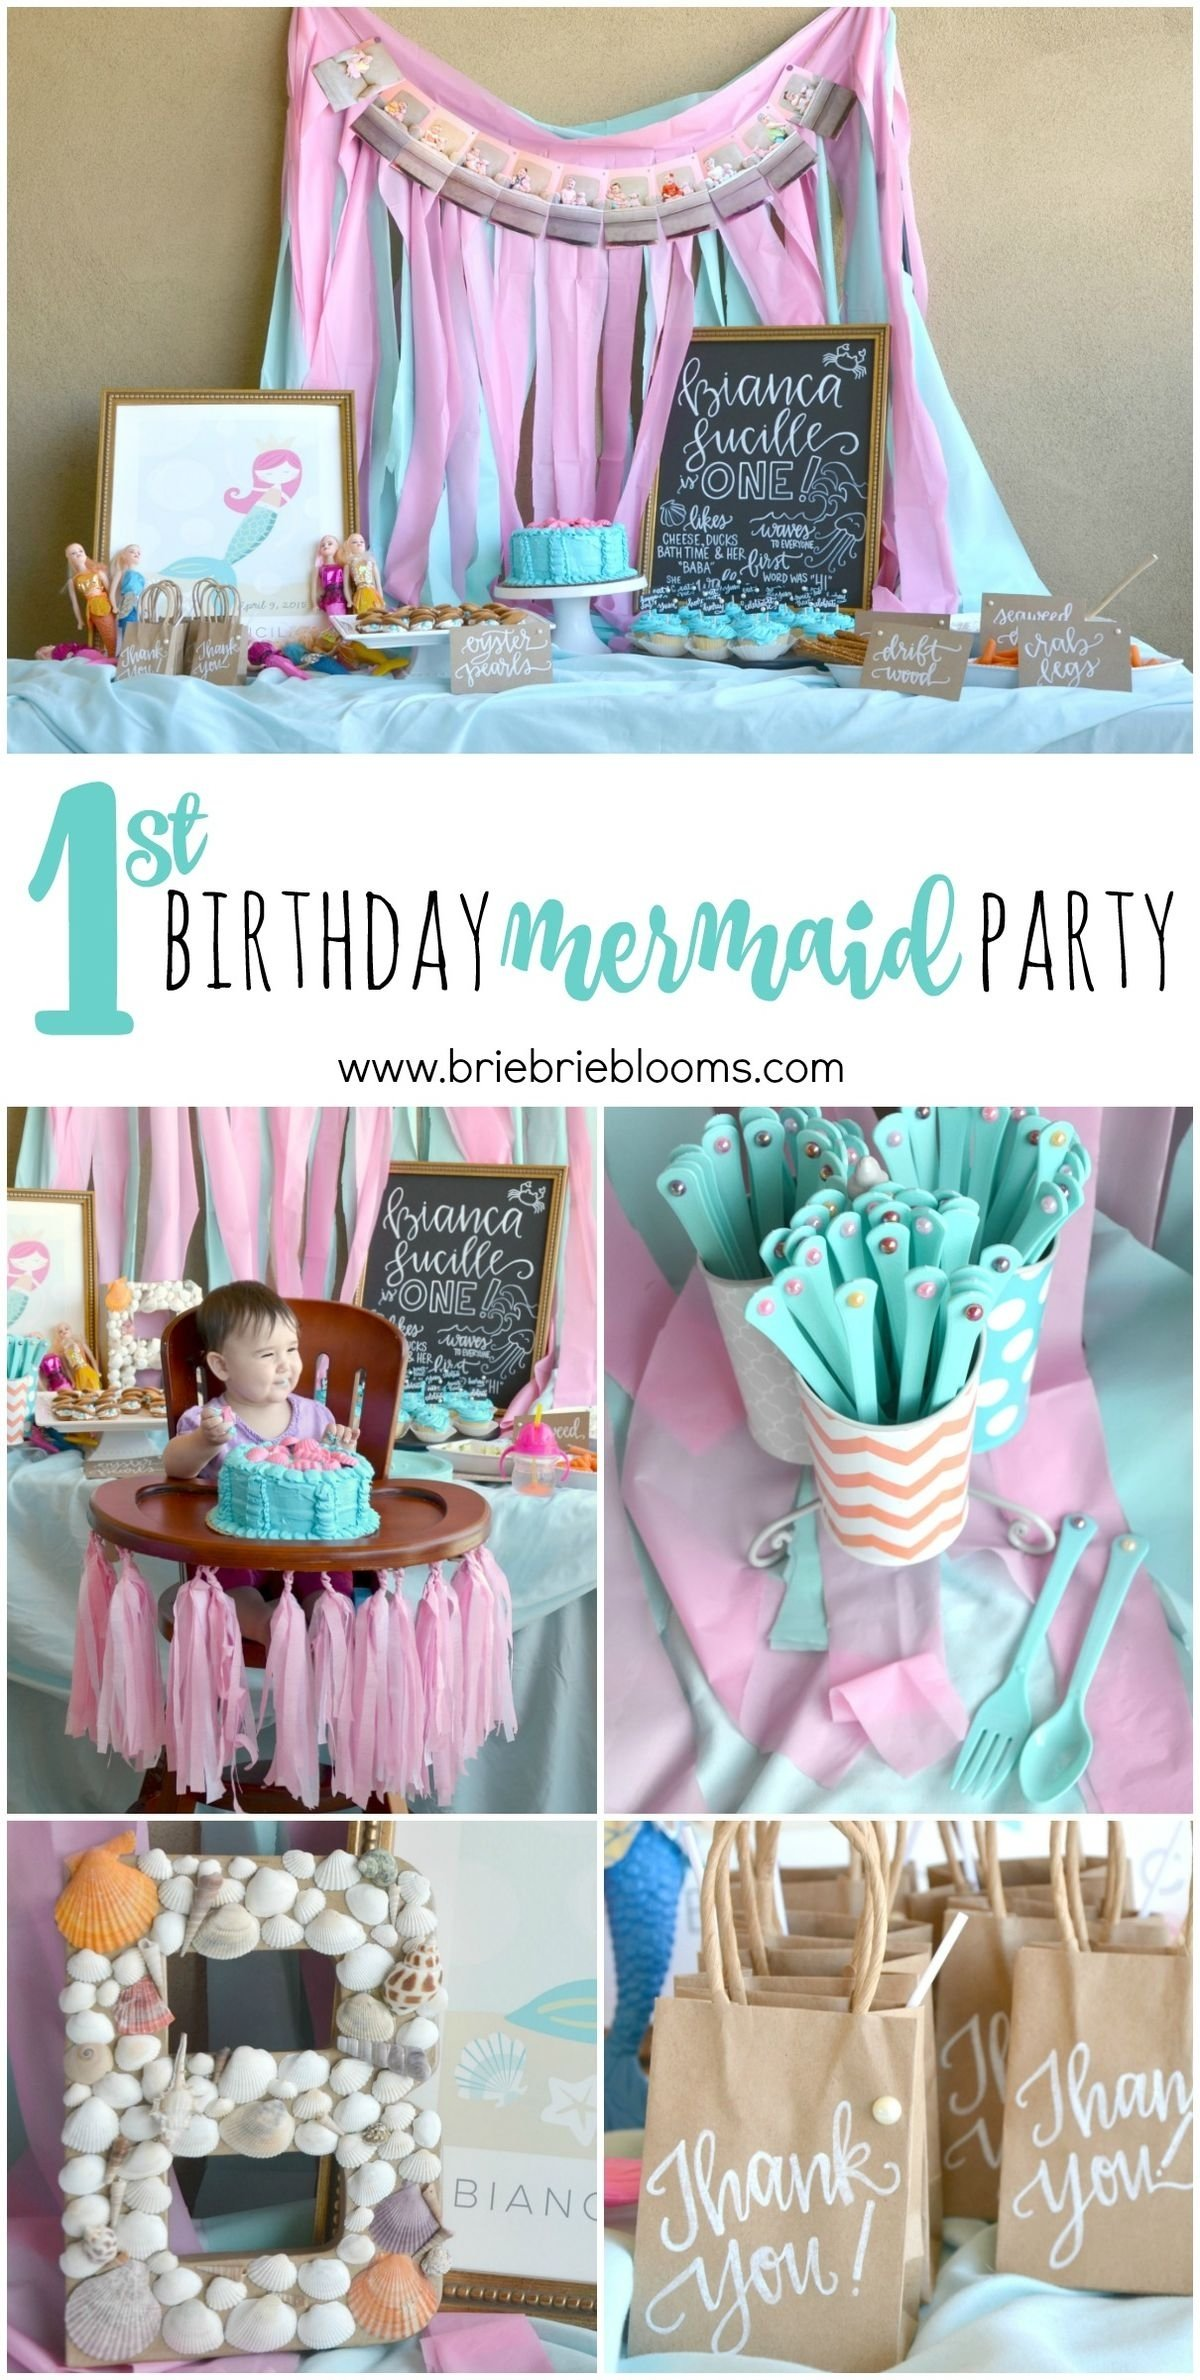 10 Famous One Year Birthday Party Ideas themes birthday one year old birthday party ideas for twins with